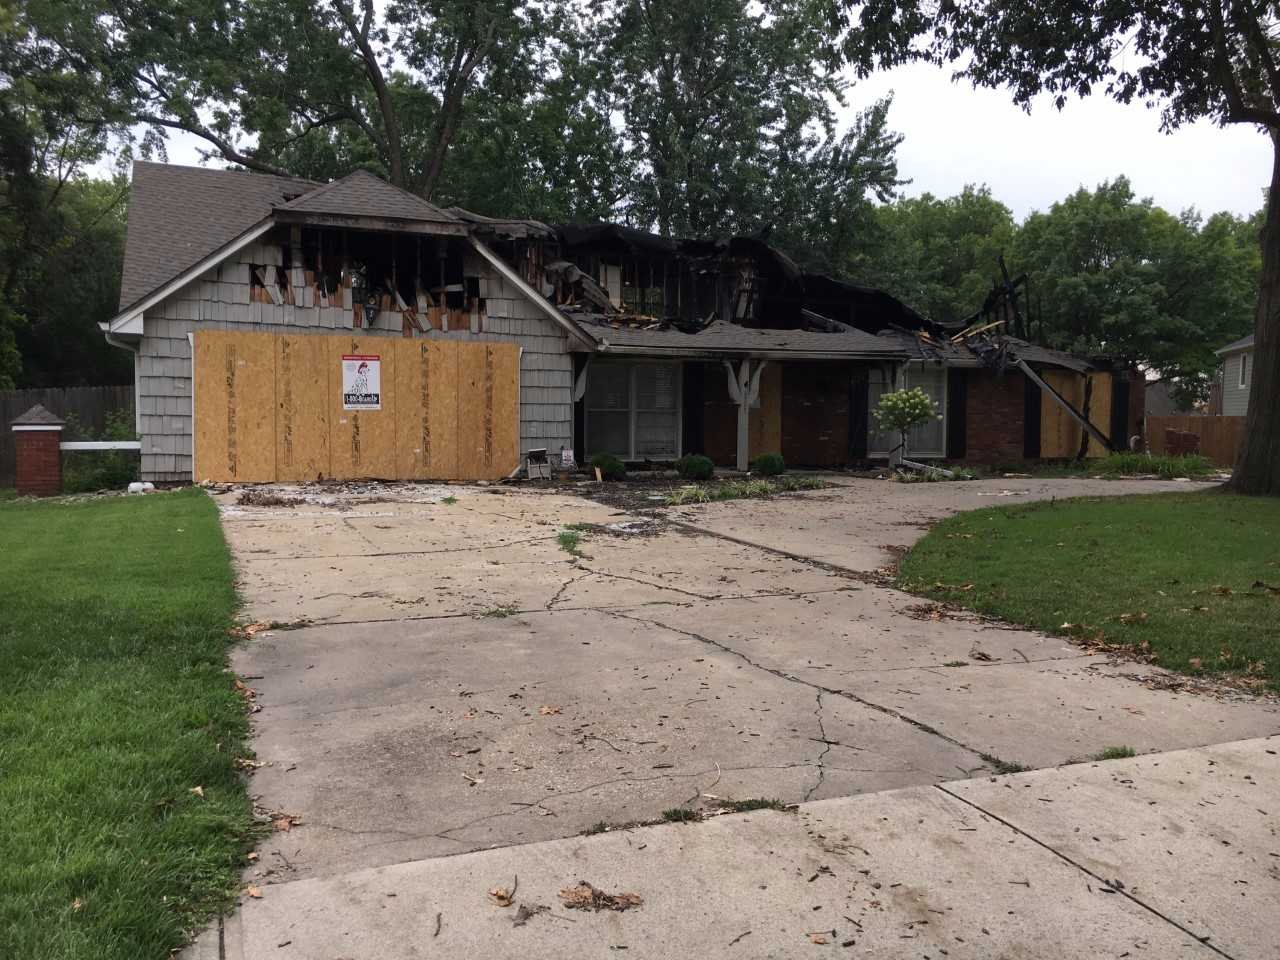 Flames engulfed a home in Prairie Village on Sunday morning. (Natalie Davis)